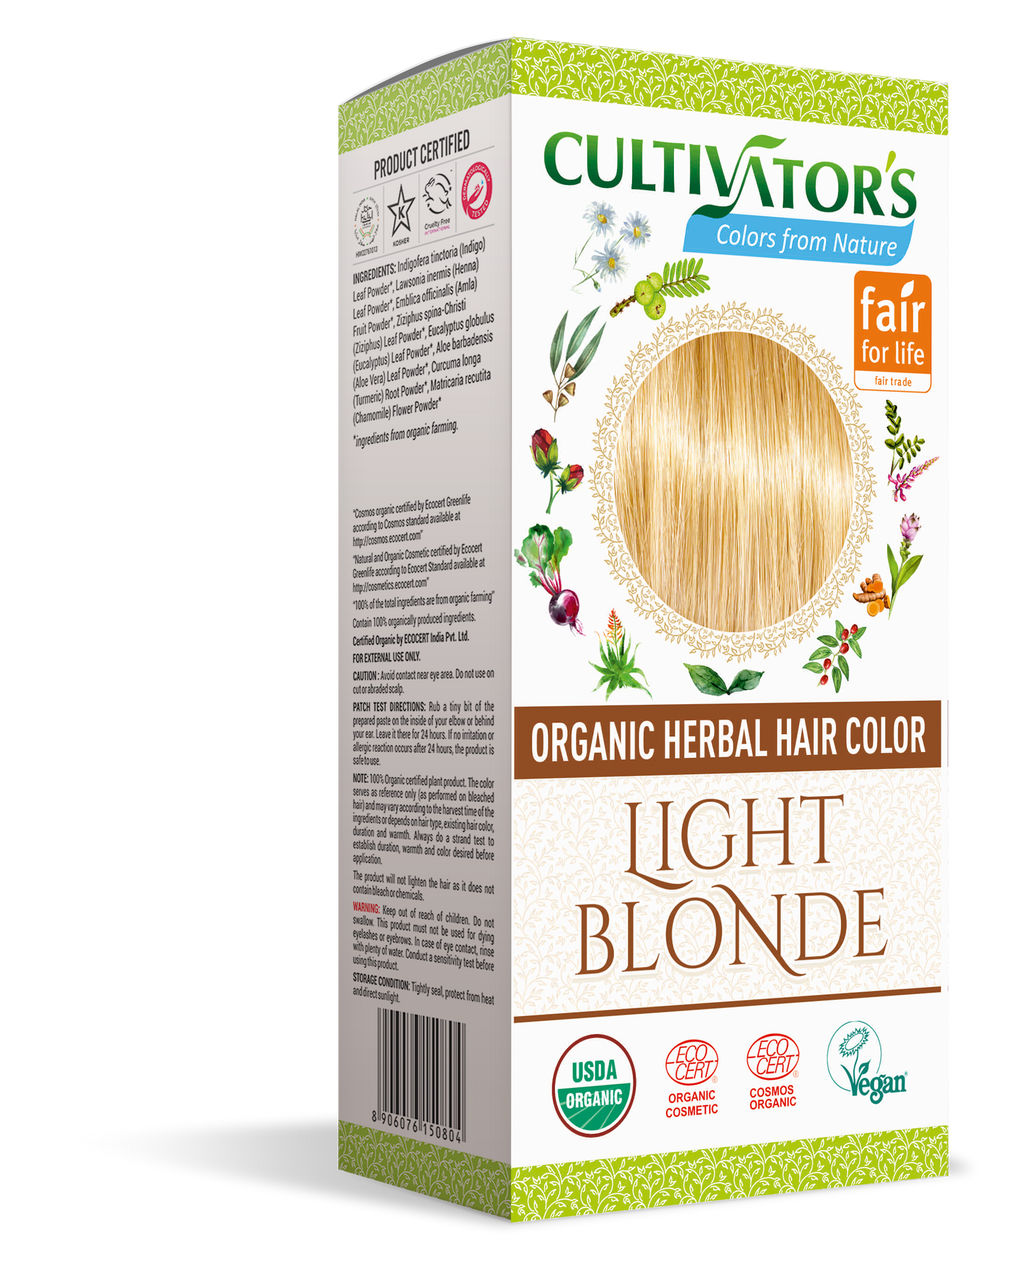 ORGANIC HERBAL HAIR COLOR LIGHT BLONDE